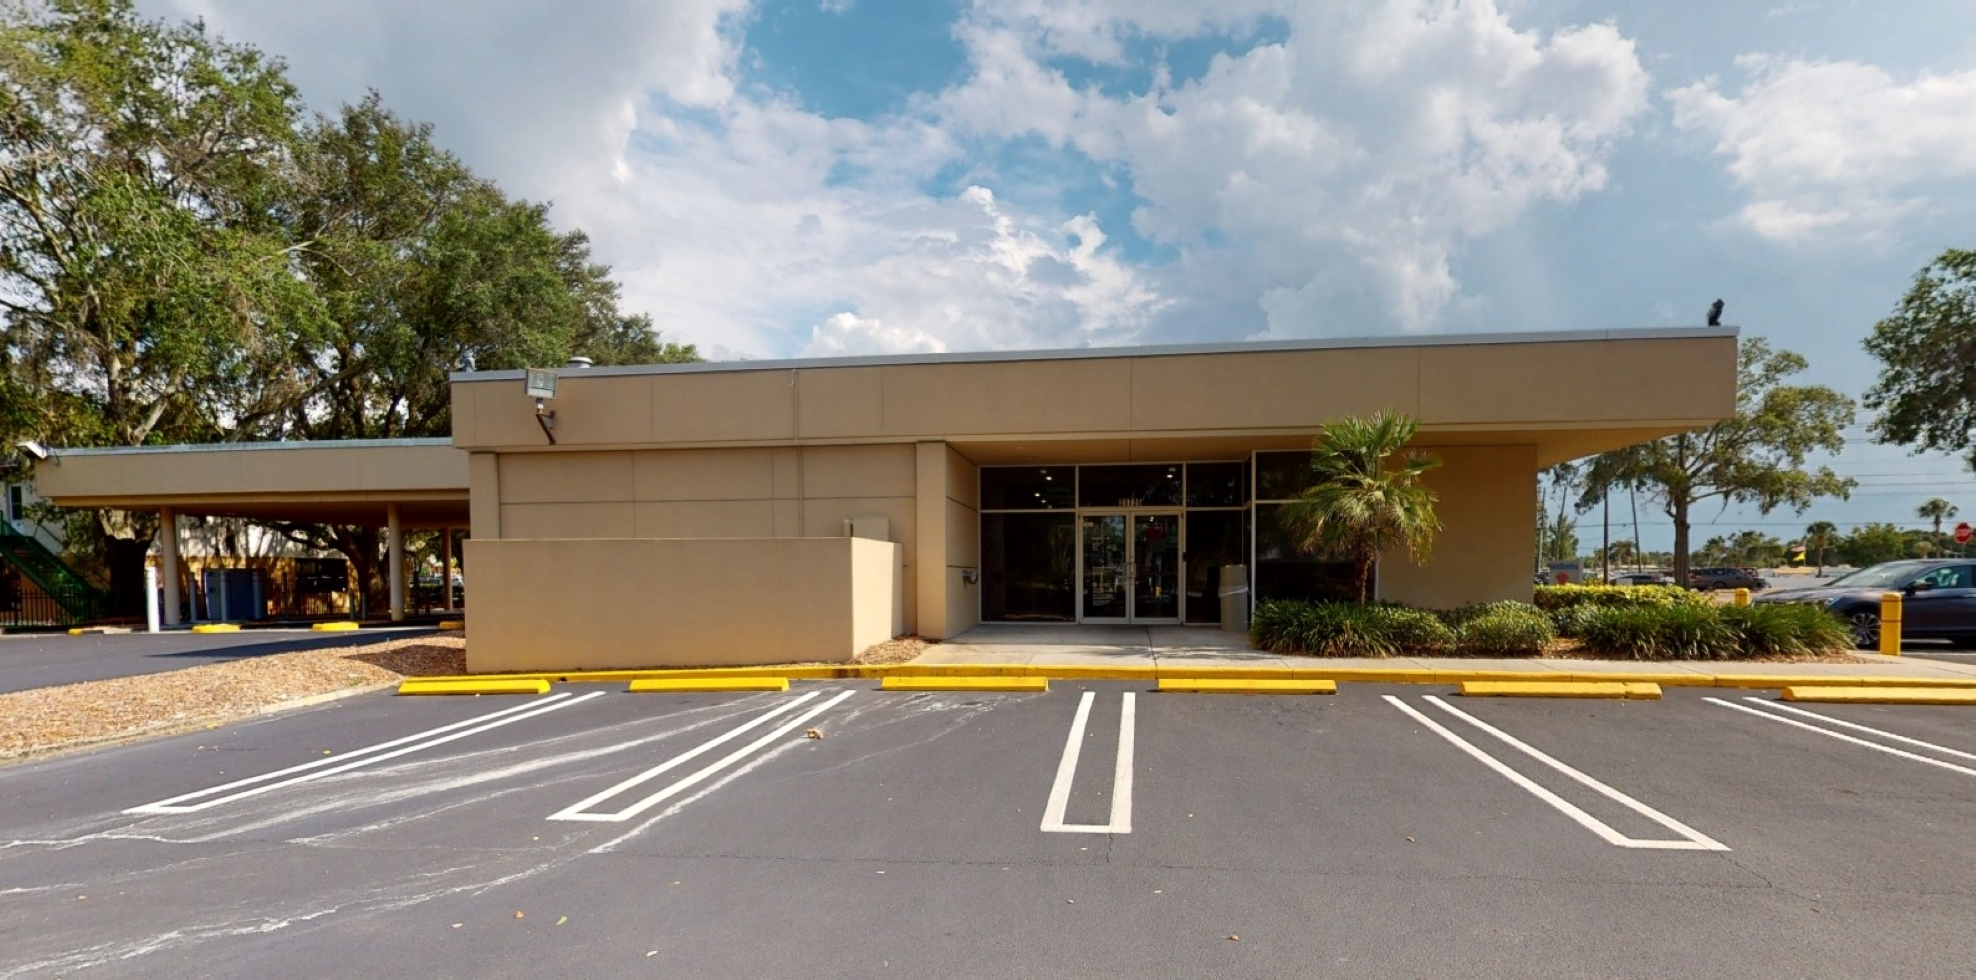 Bank of America financial center with drive-thru ATM and teller | 21725 Village Lakes Shopping Ctr Dr, Land O Lakes, FL 34639